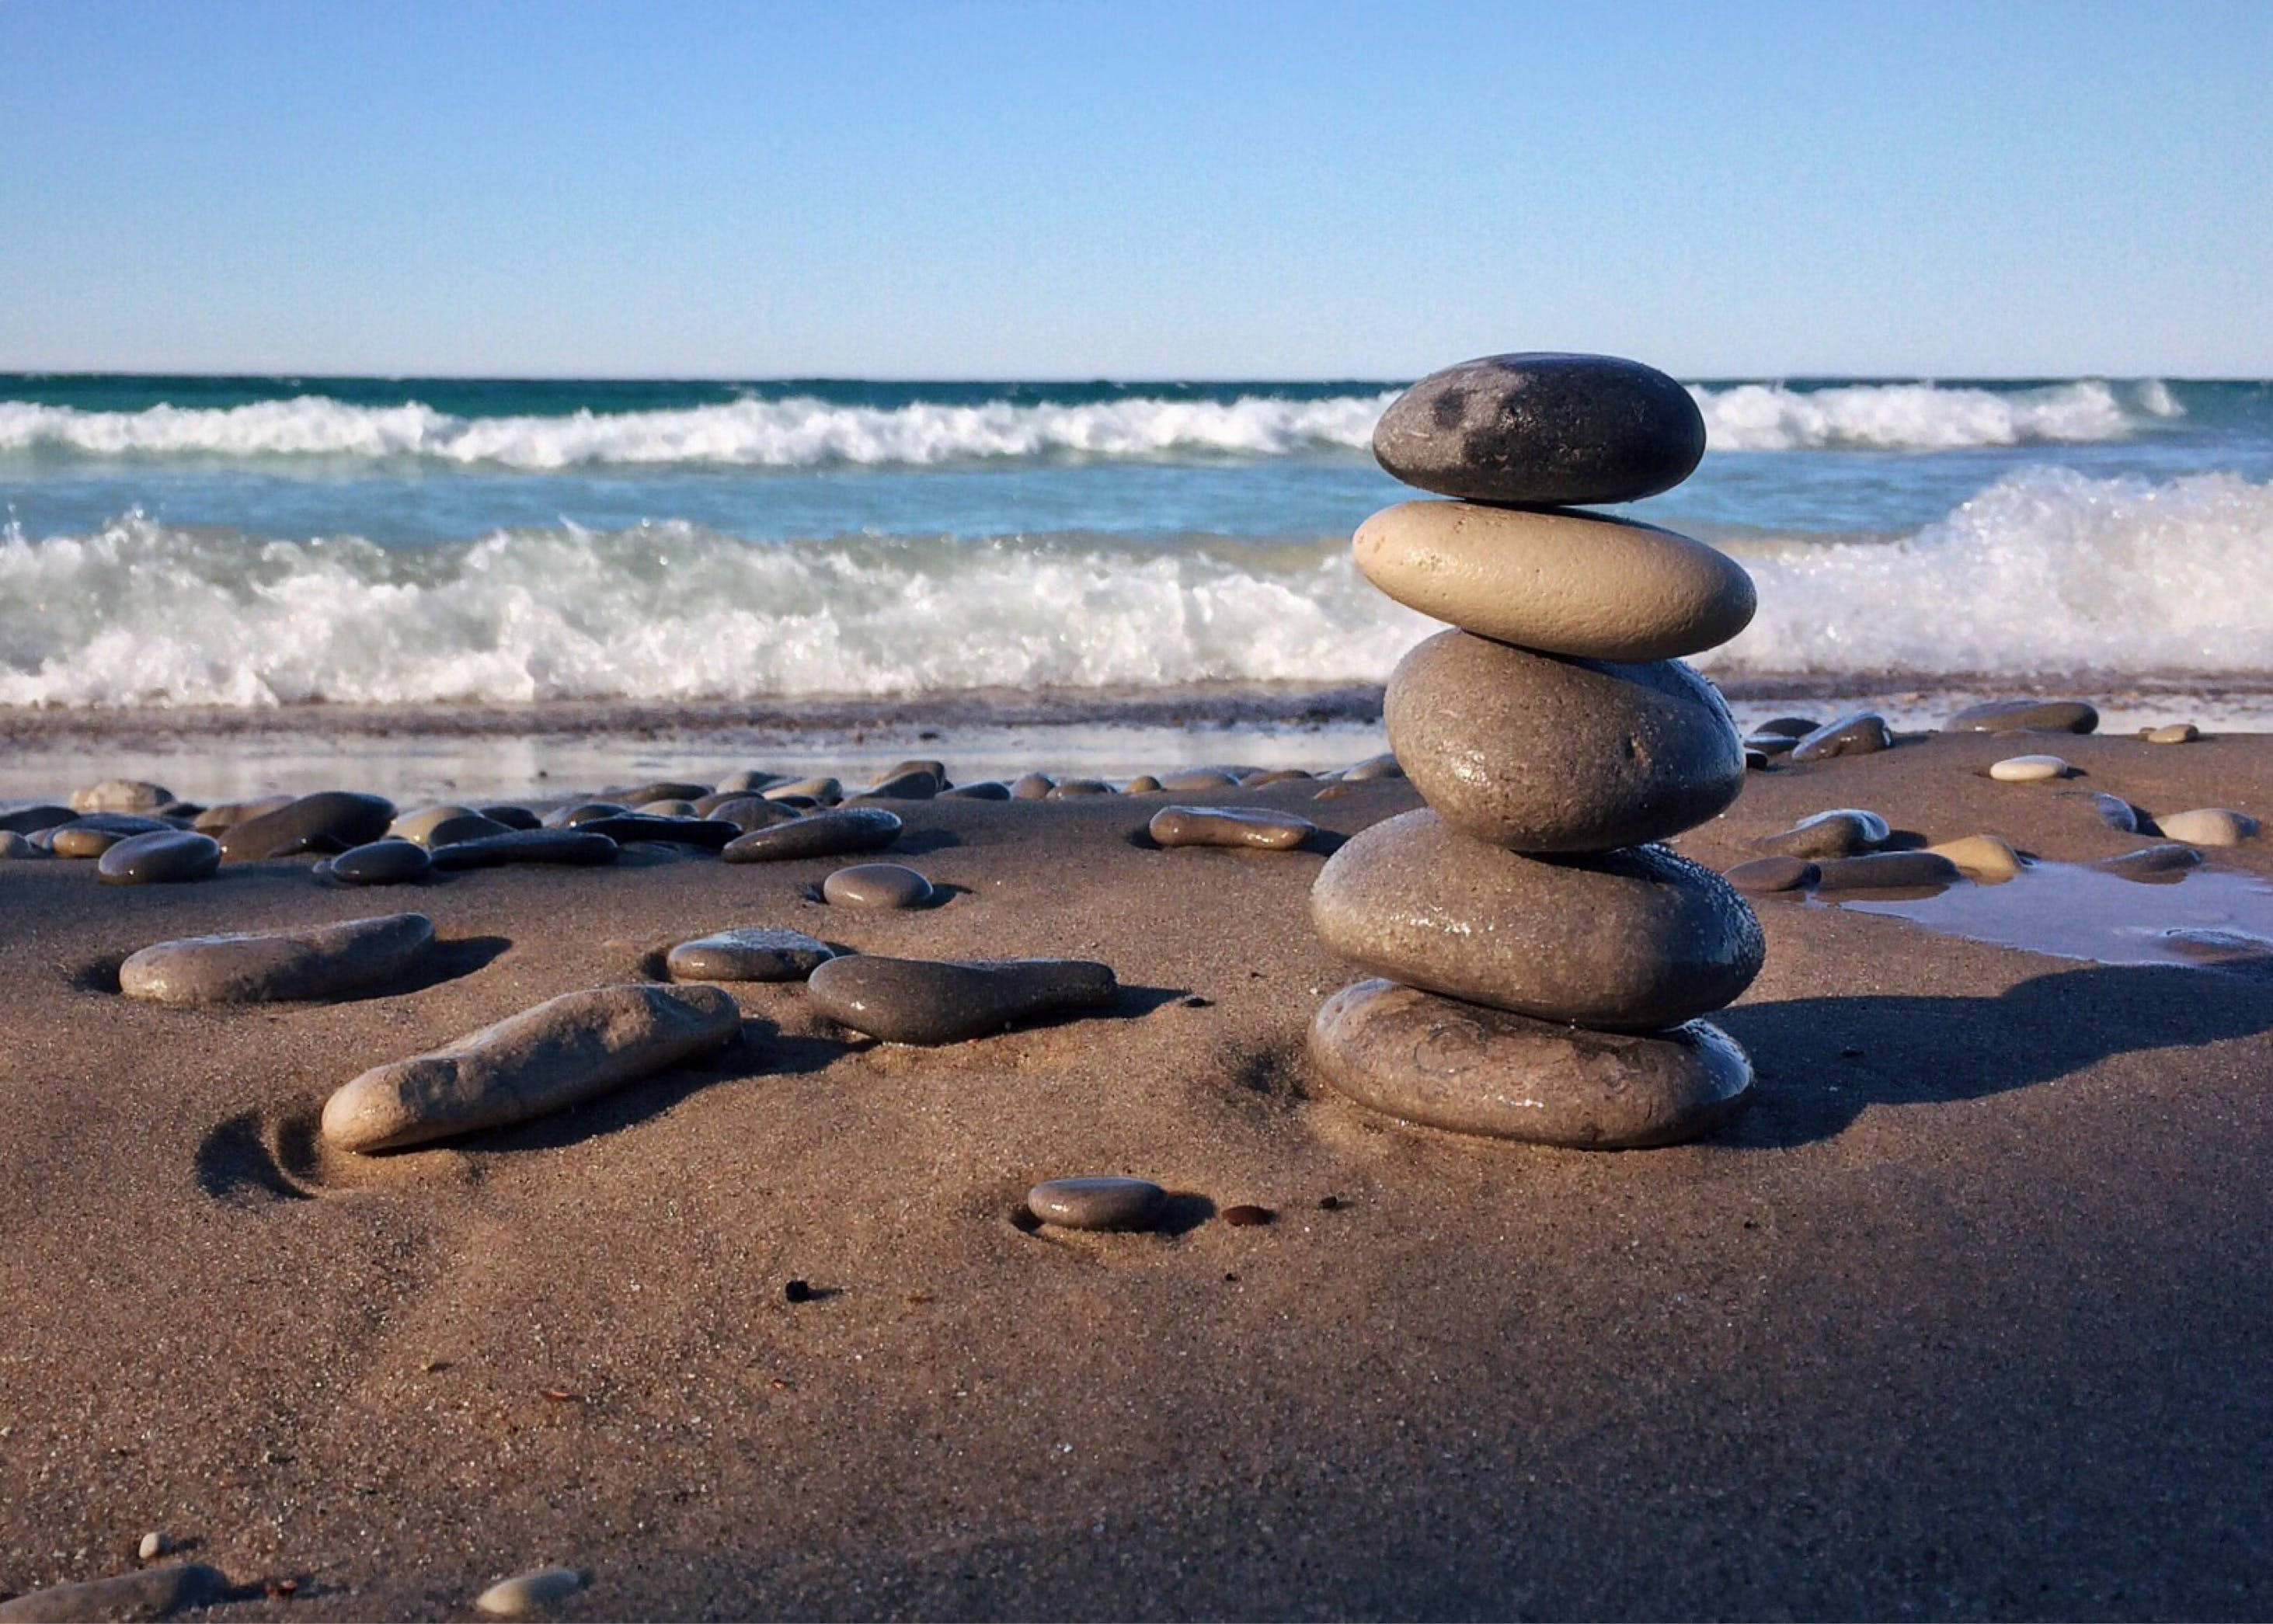 Free stock photo of rocks, stacked, balance, beach shore